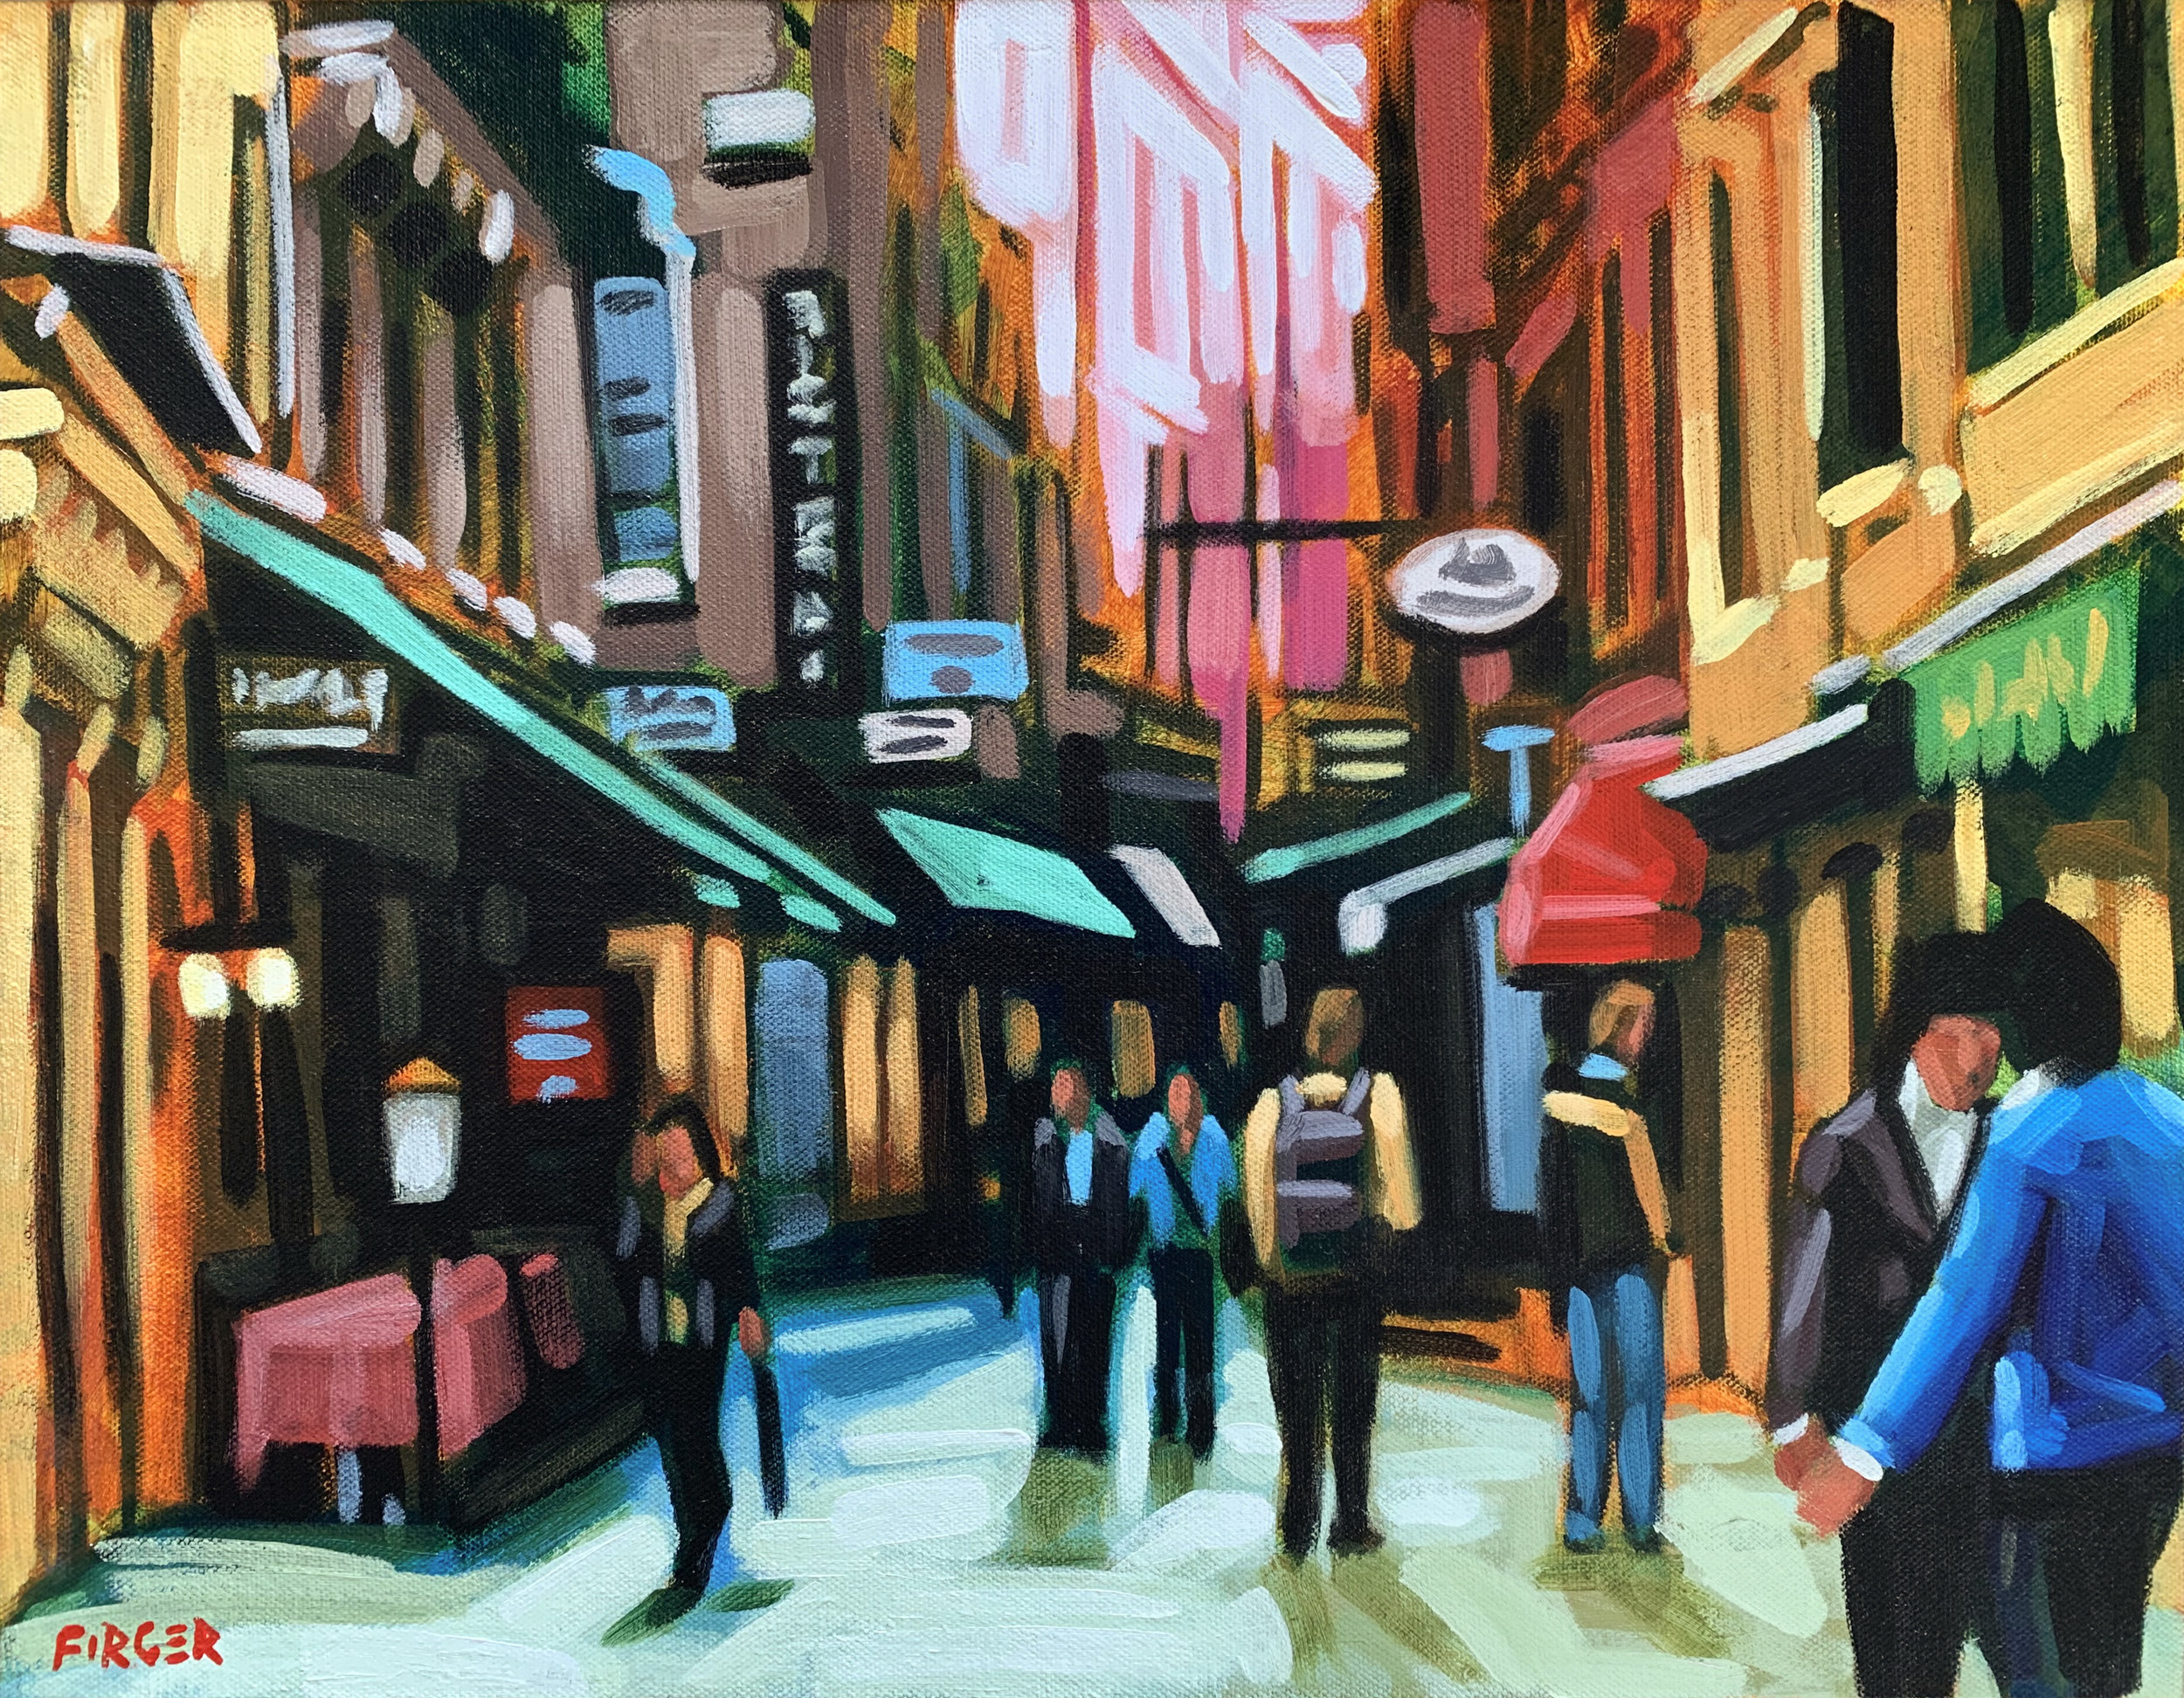 Confetti Storefronts, Venice, Italy - 14 x 18, Acrylic on Canvas (SOLD)